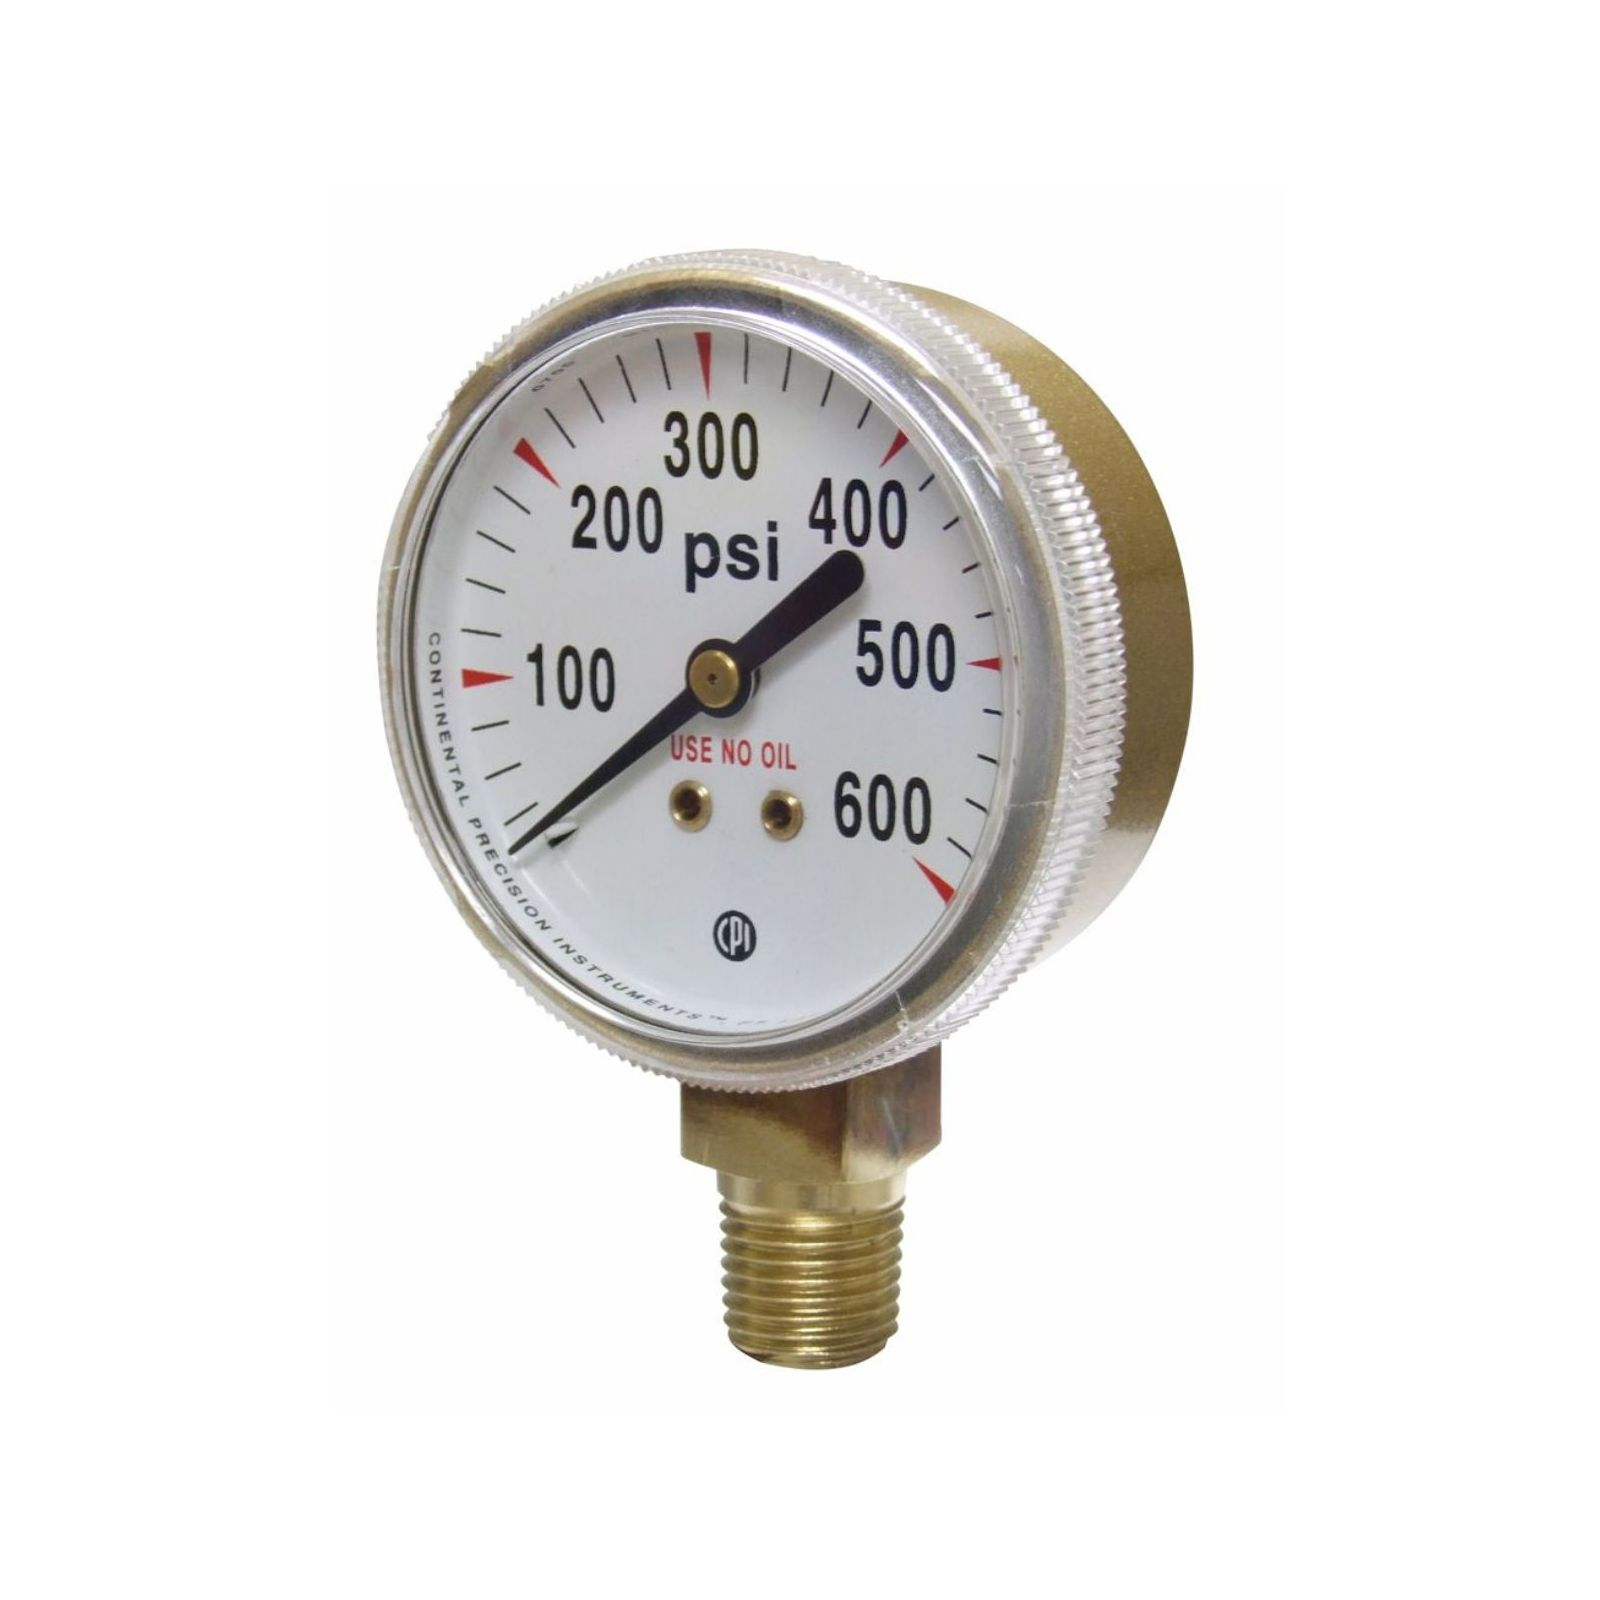 Uniweld G8SD - Replacement Gauge For Use With RHP400 Nitrogen Regulator